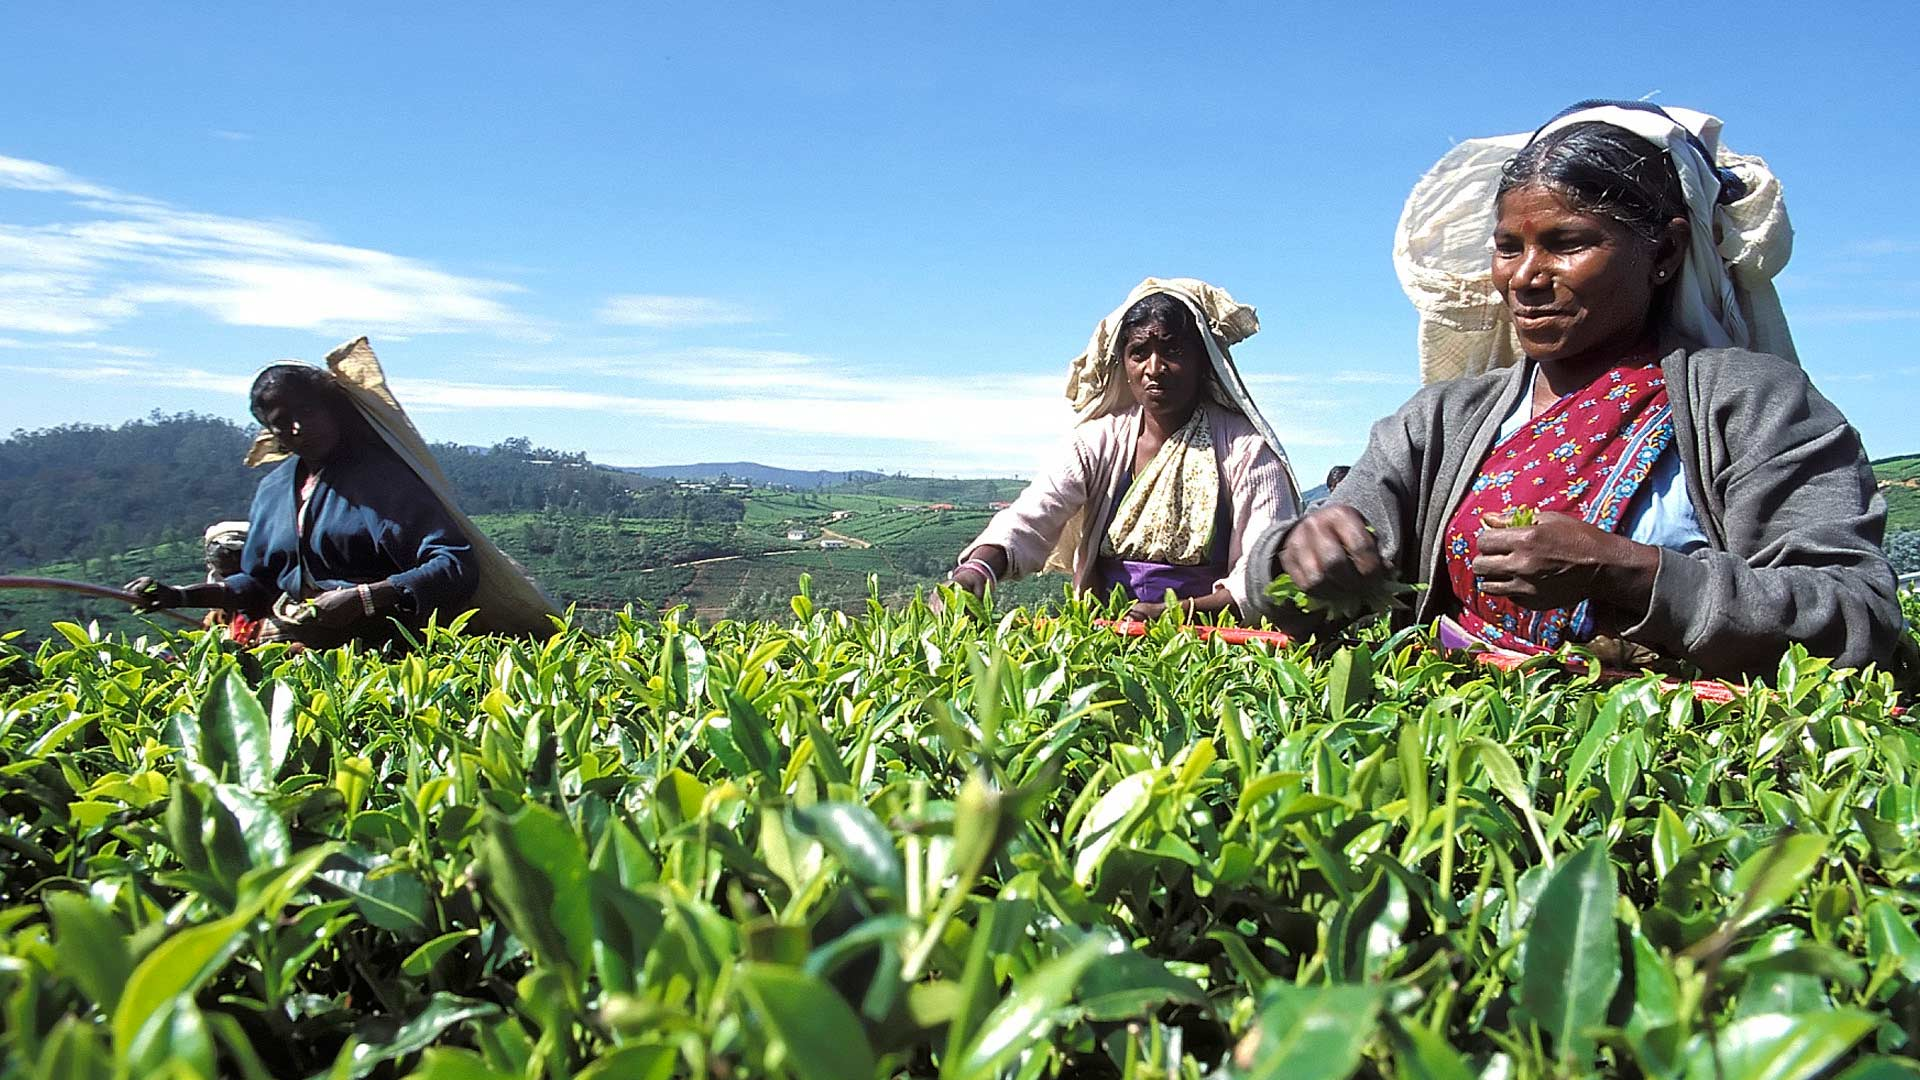 Tea pluckers, Nuwara Eliya, Central Province, Sri Lanka